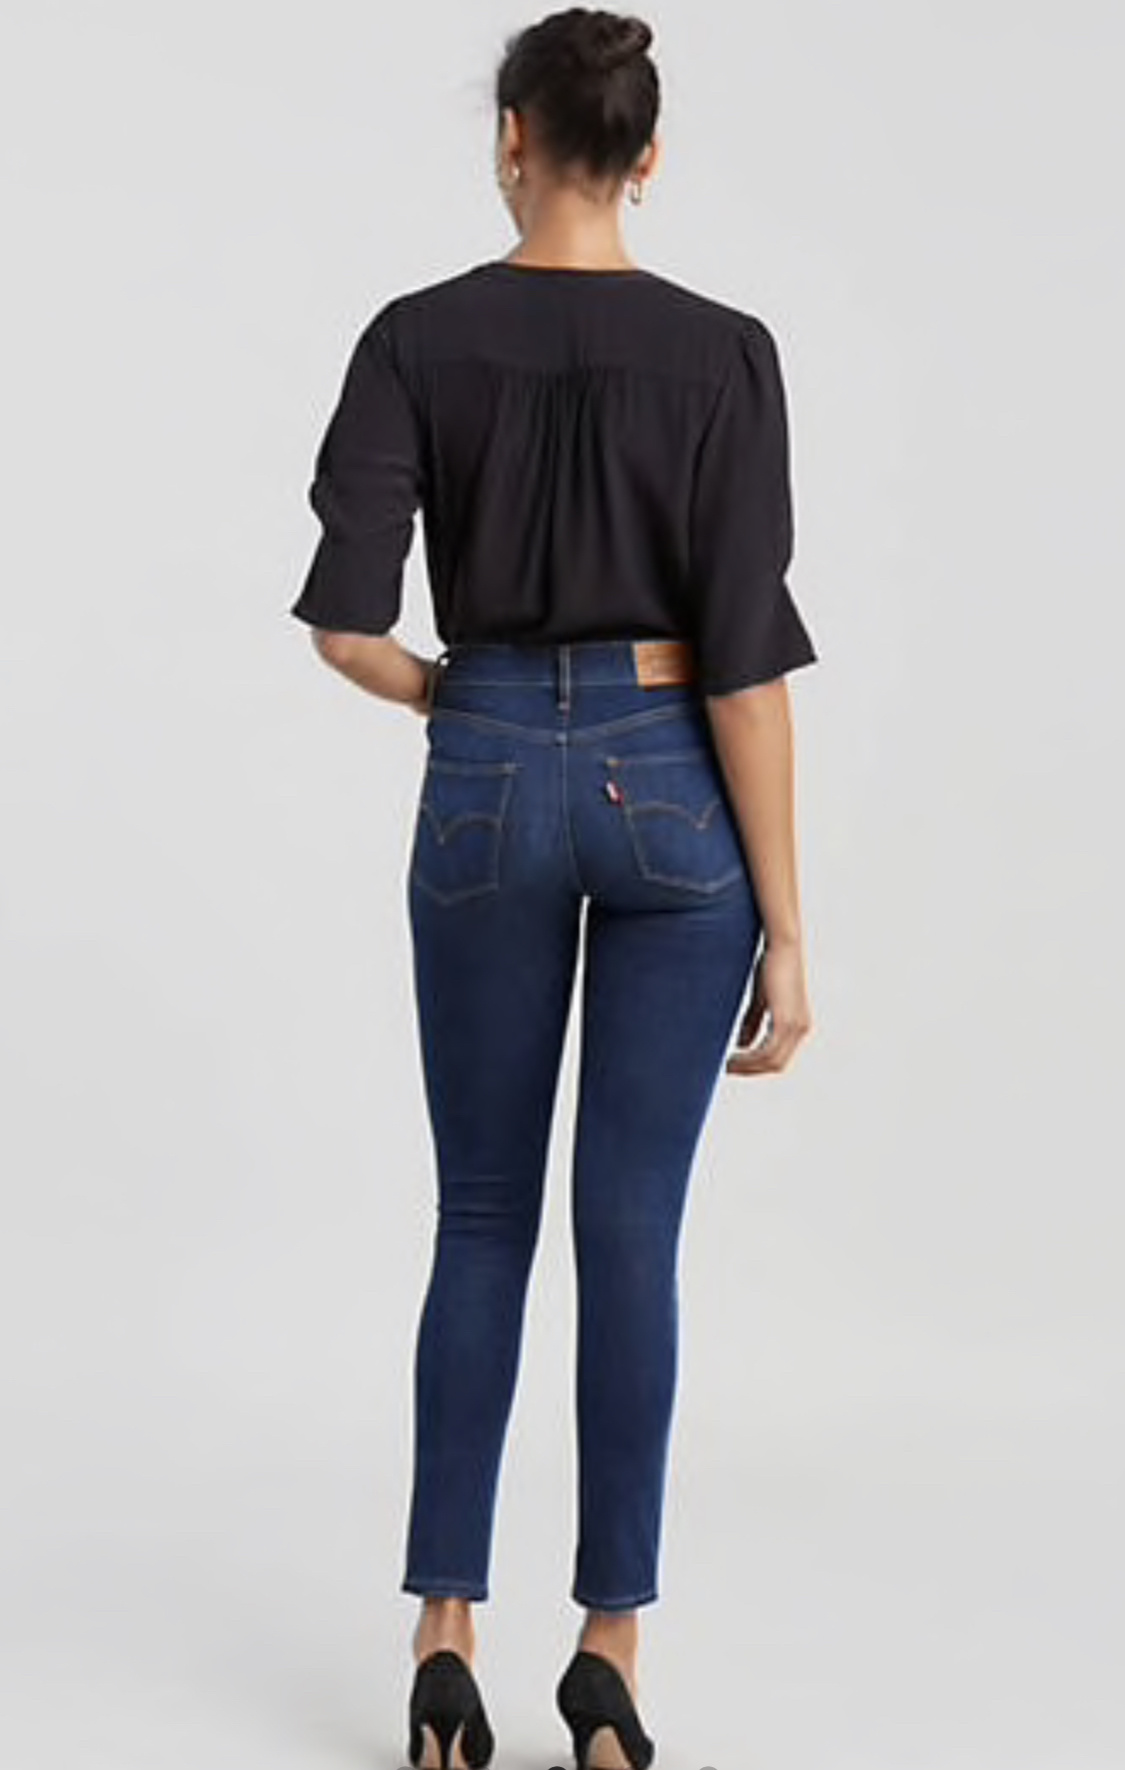 Levi's Up For Grabs 721 High Rise Jean